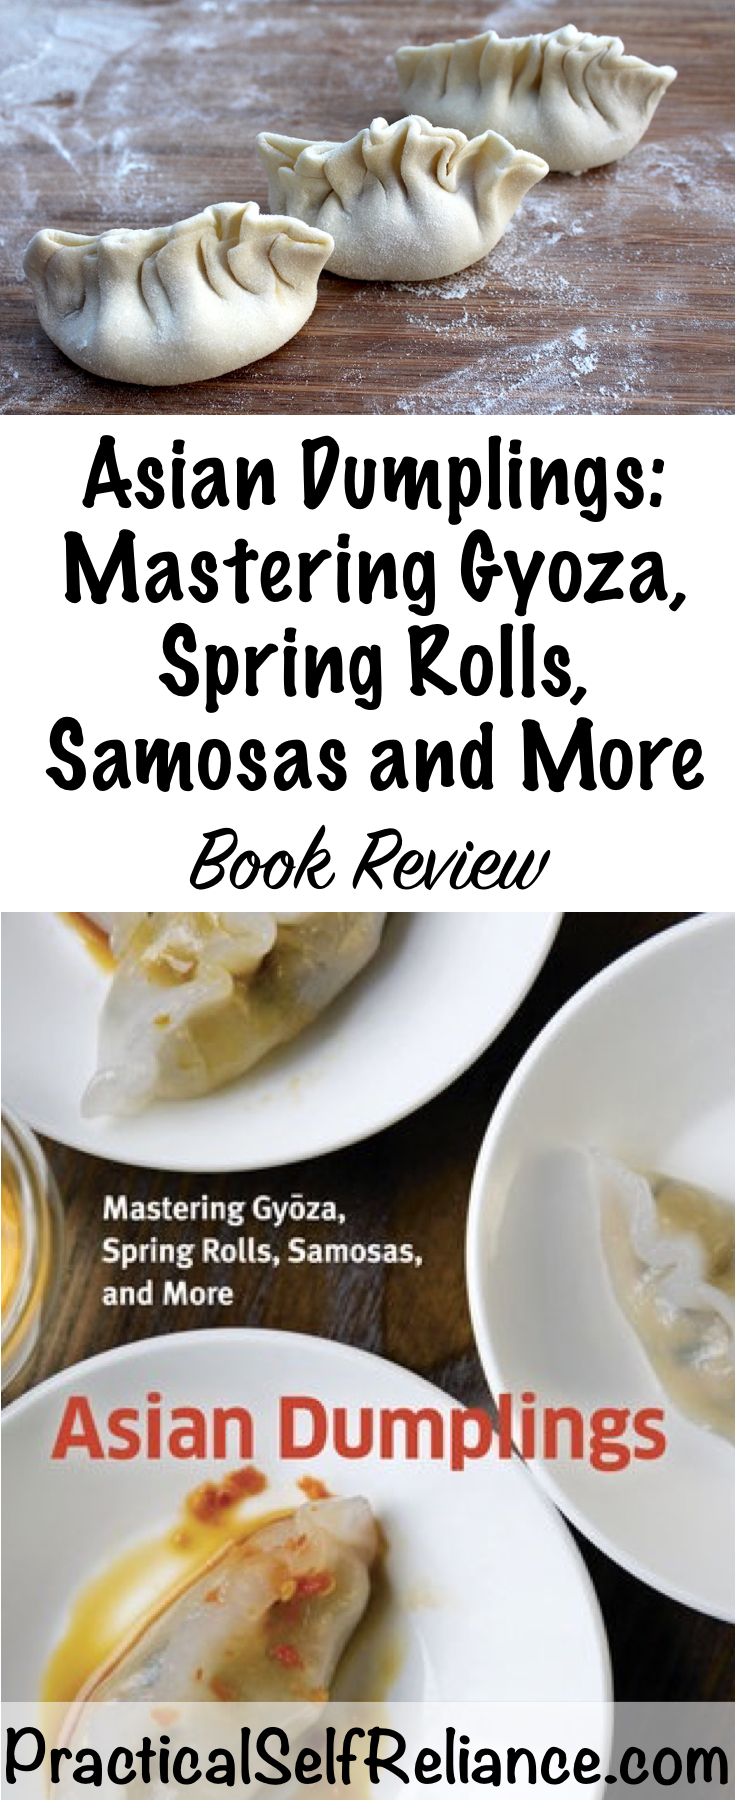 Asian Dumplings: Mastering Gyoza, Spring Rolls, Samosas and More - Book Review and Recipe